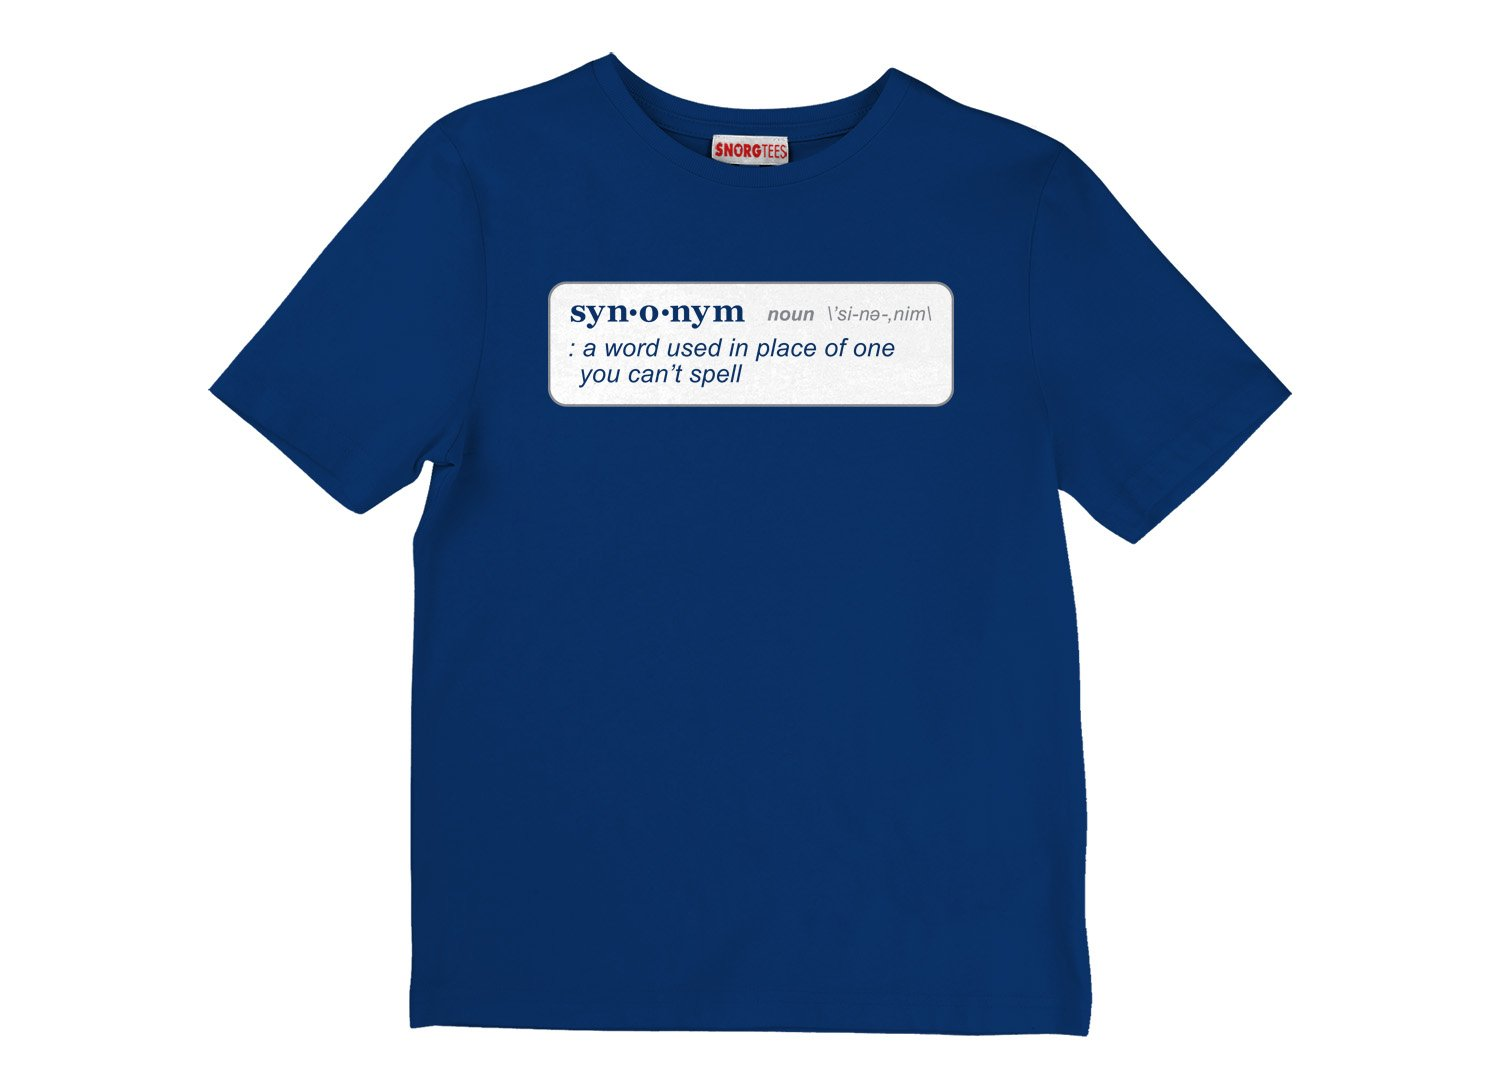 Synonym Definition on Kids T-Shirt